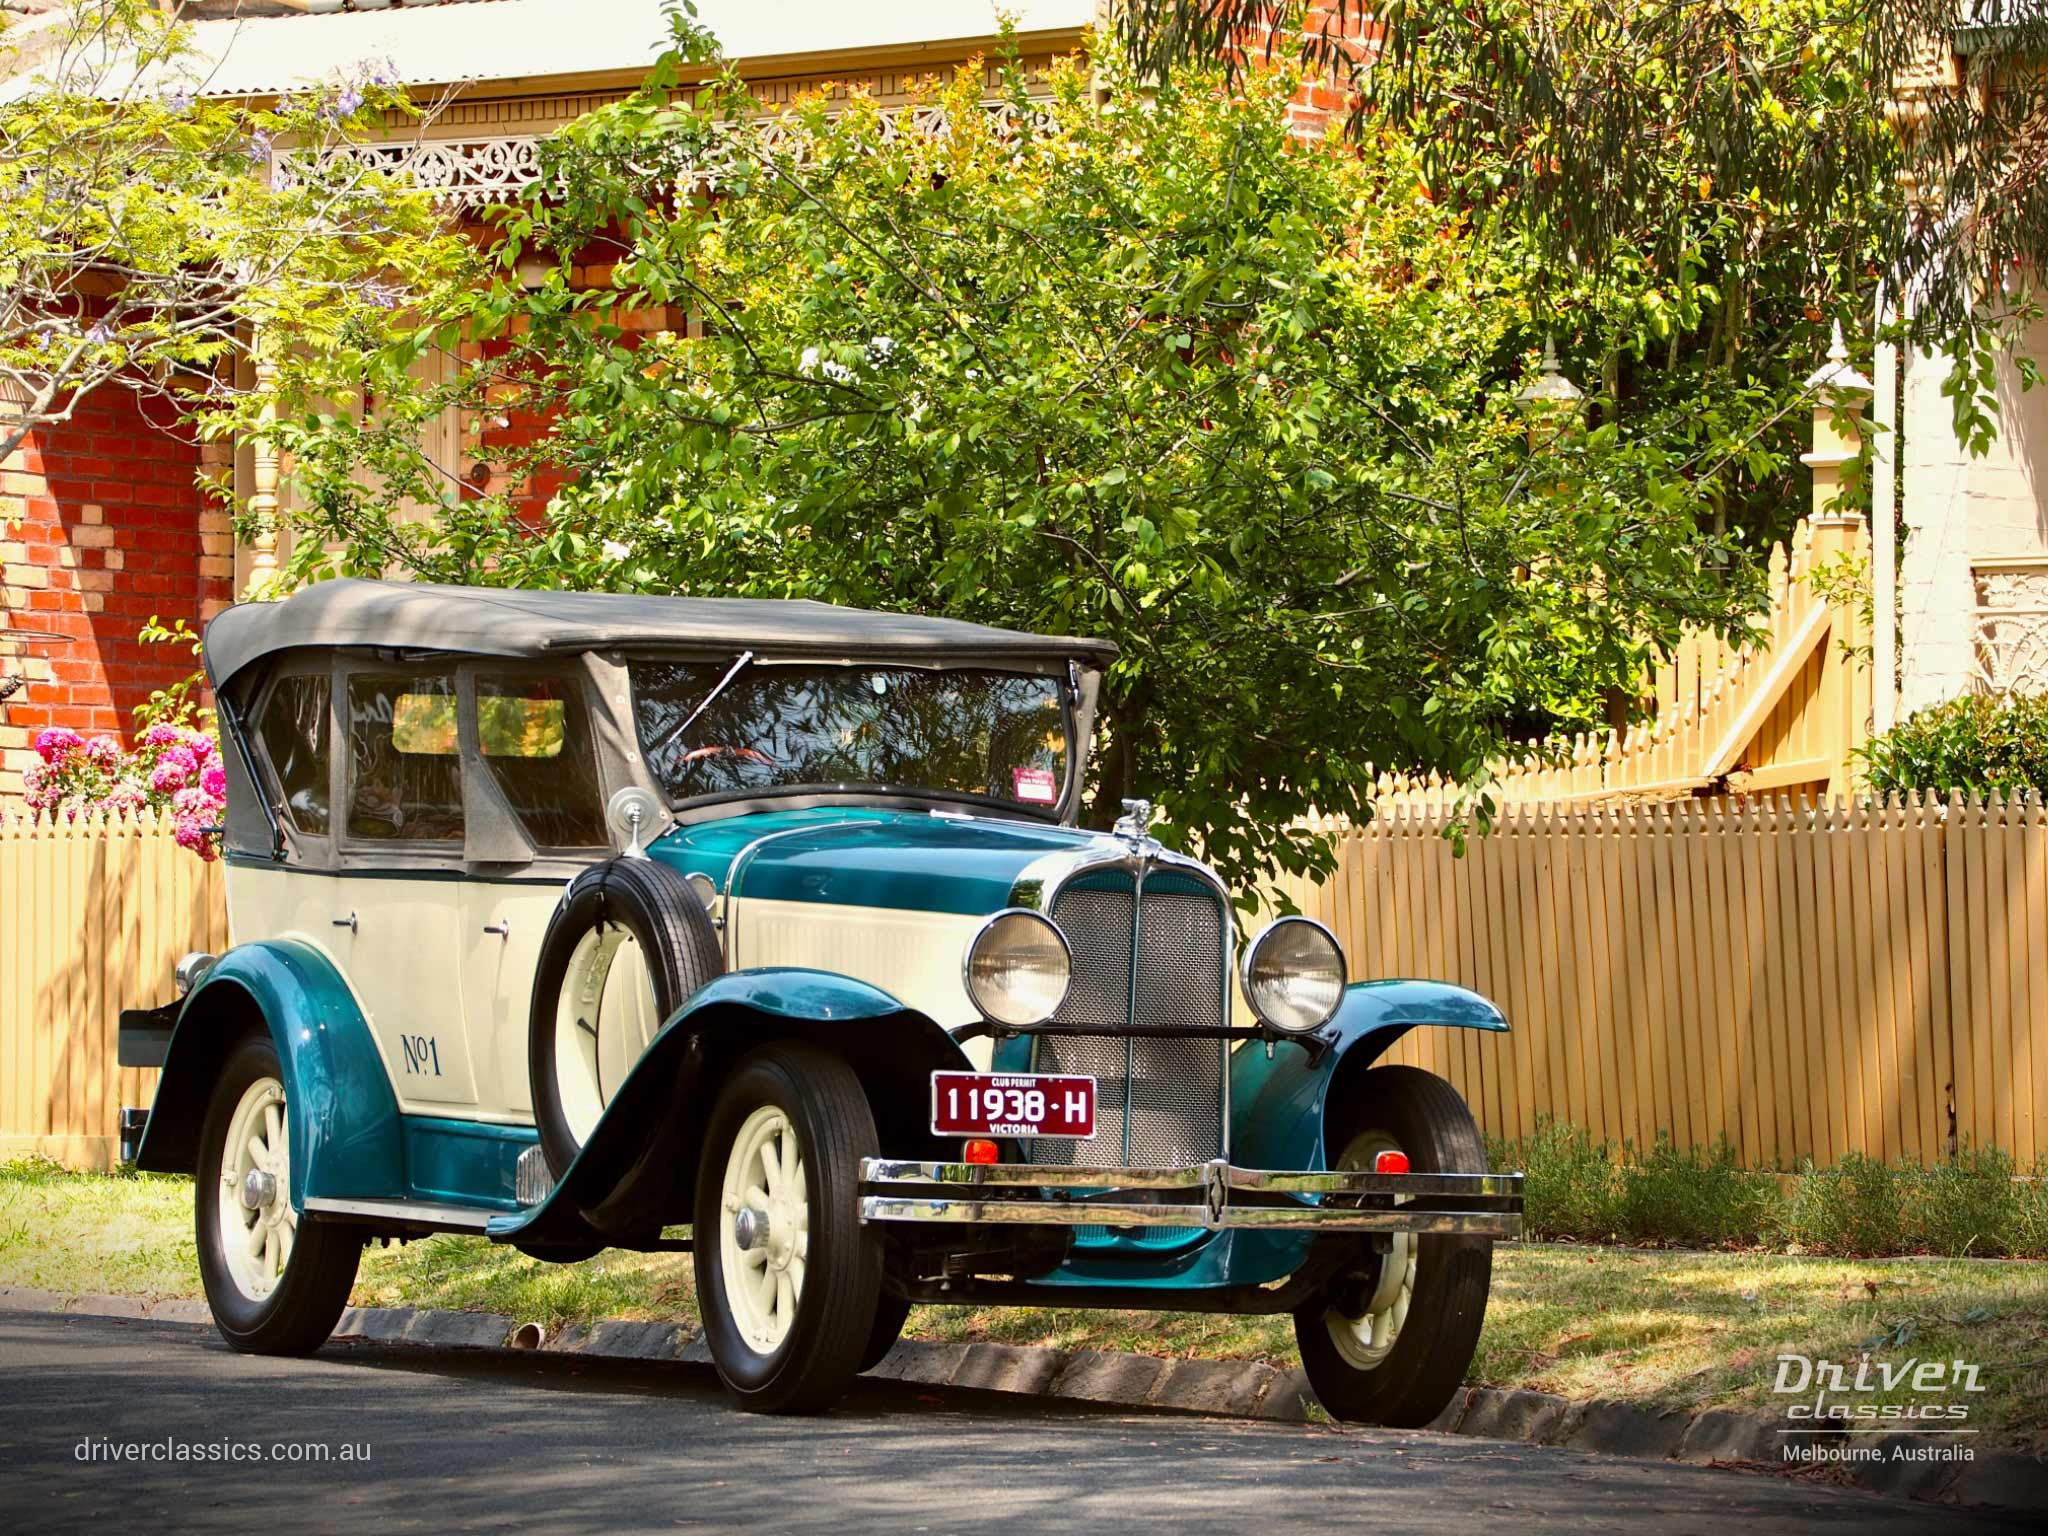 1929 Pontiac 29-6 car, front and side, picket fences, Camberwell VIC, photo taken December 2019